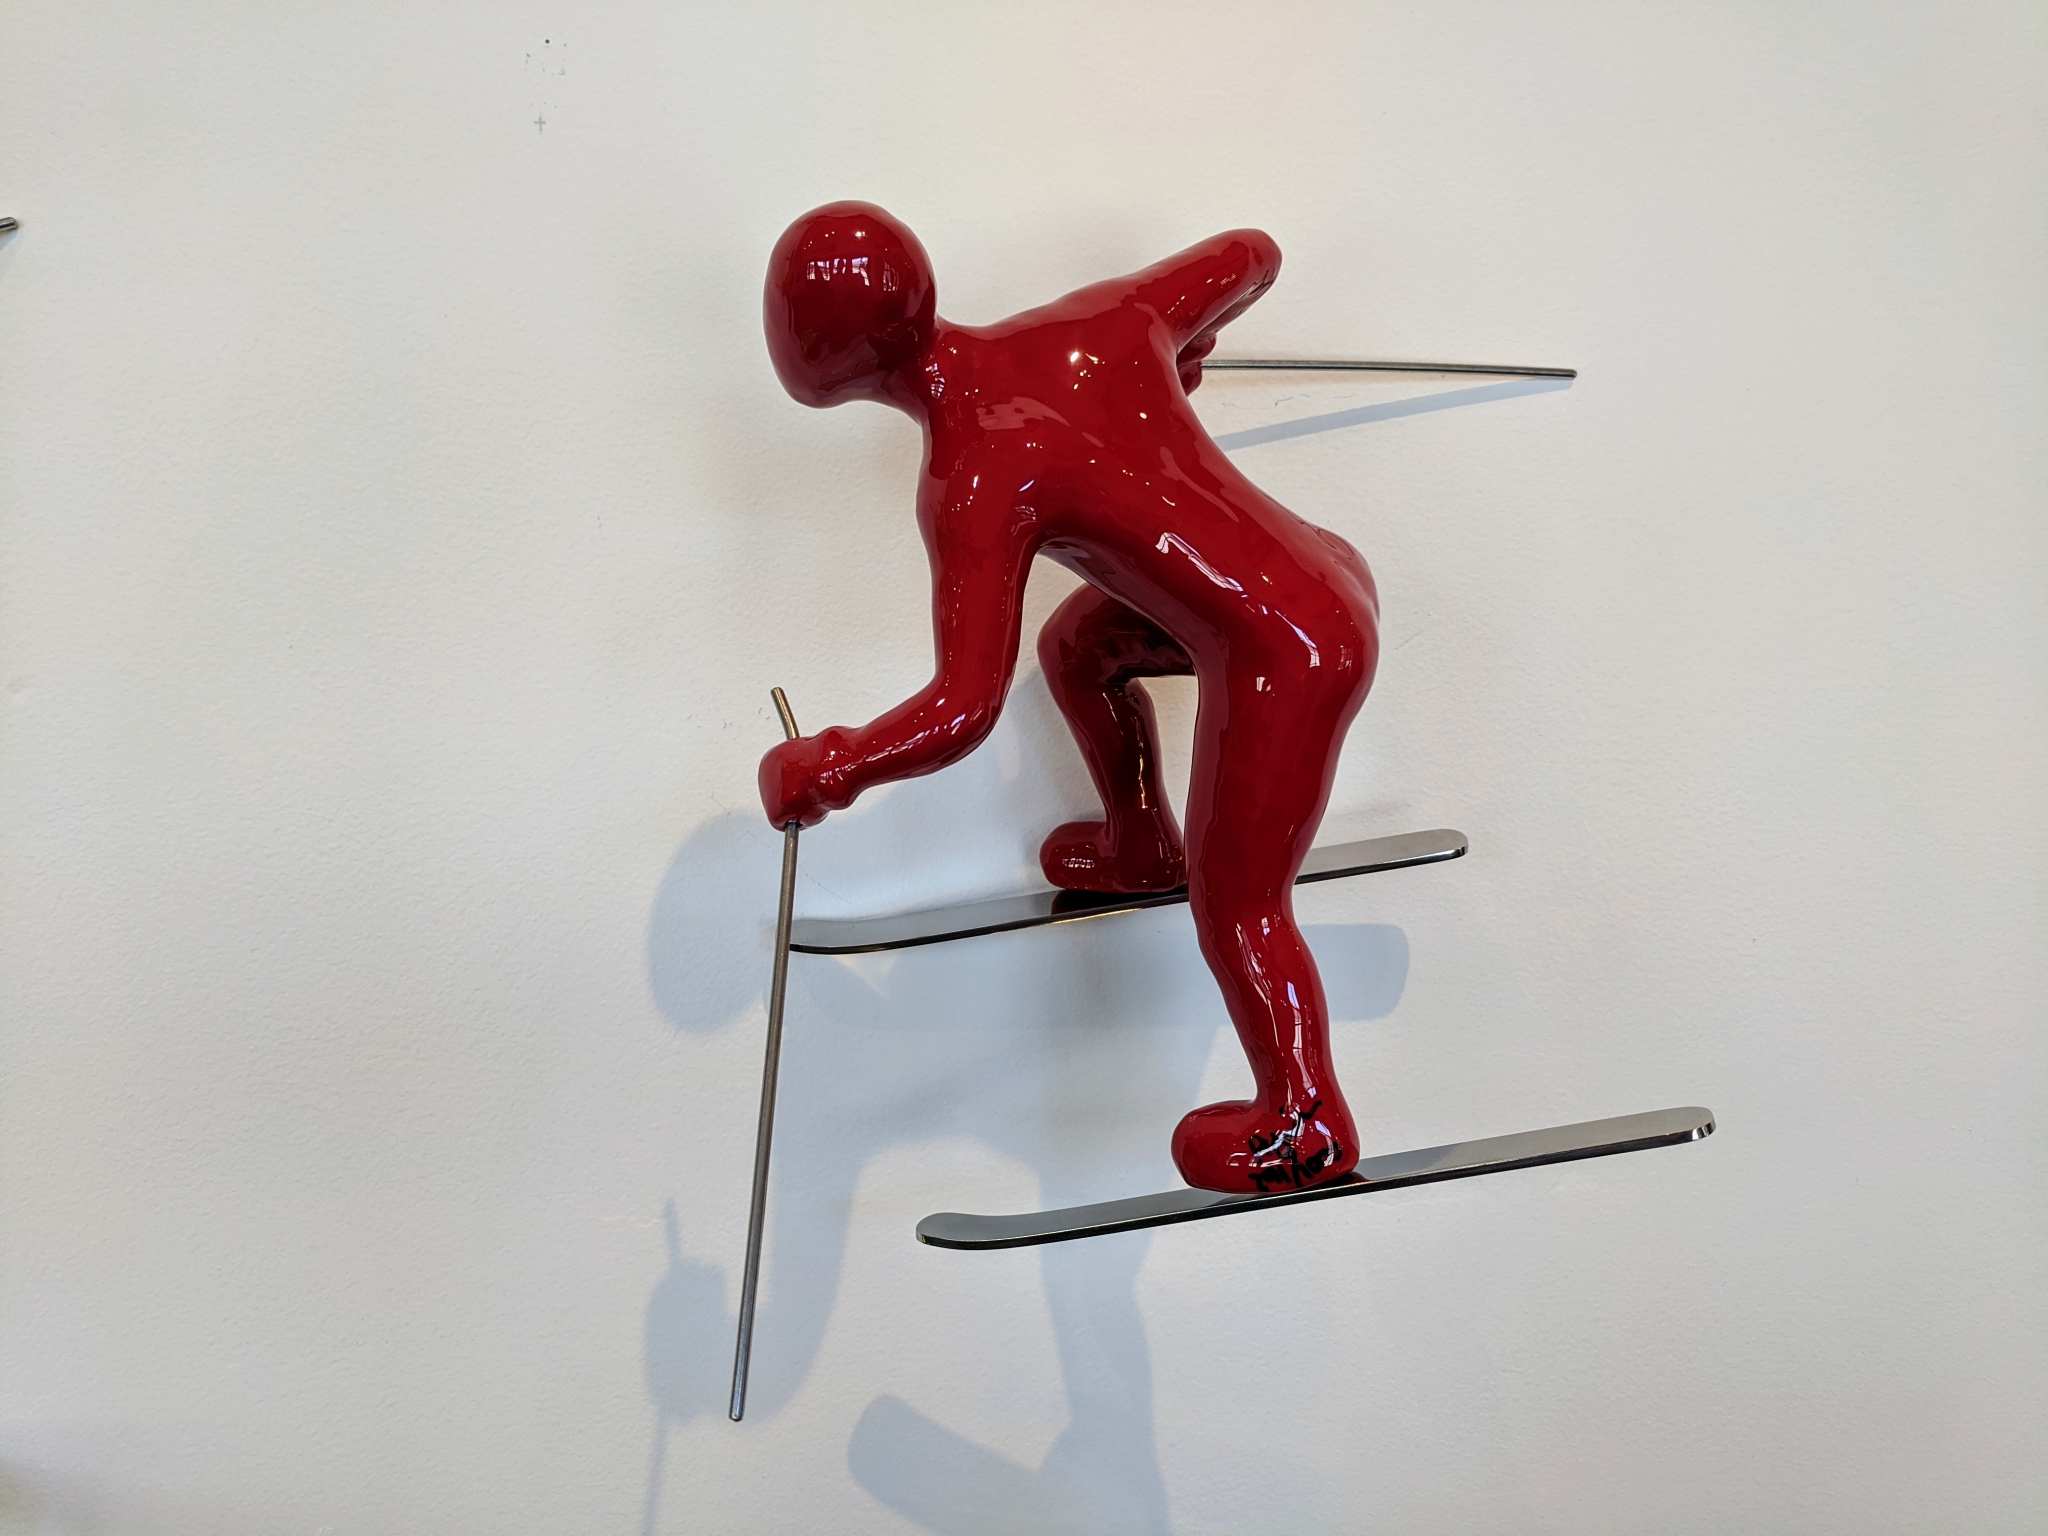 Skier 3, Color C (Red) by Ancizar Marin